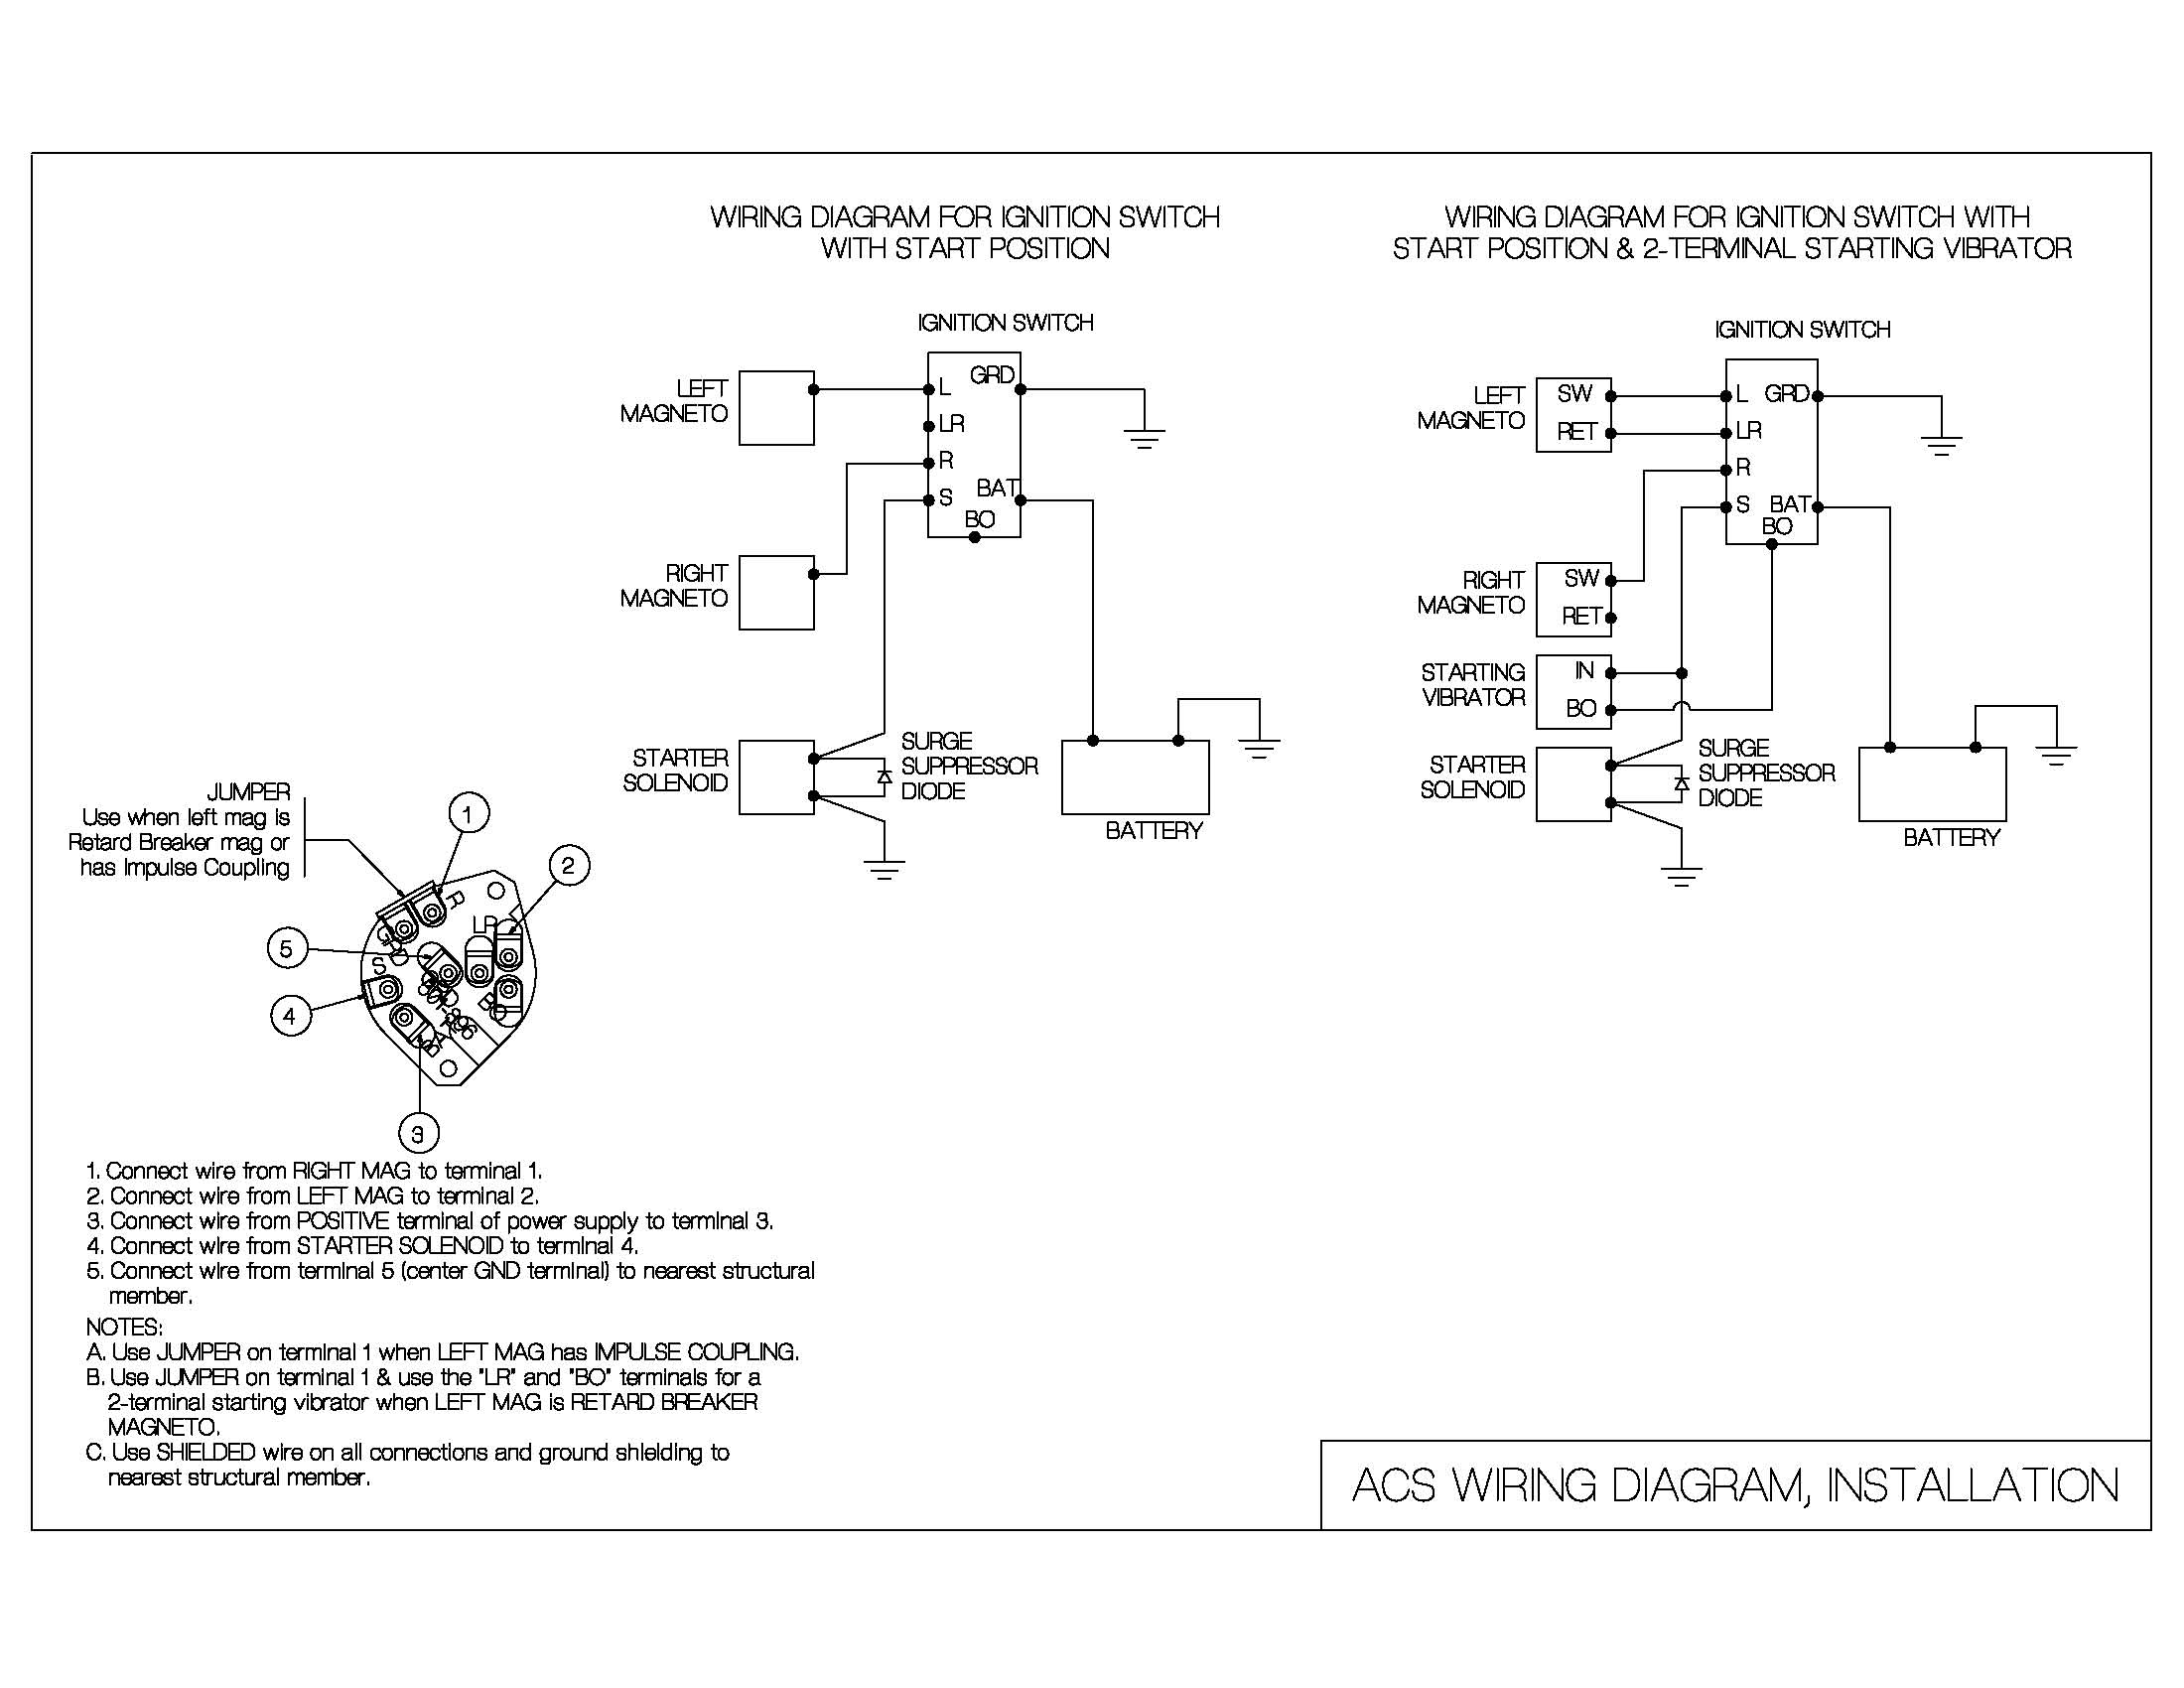 Co Wiring Diagram Not Lossing First Company Diagrams Ignition Switch Acs Products Rh Acsproducts Light